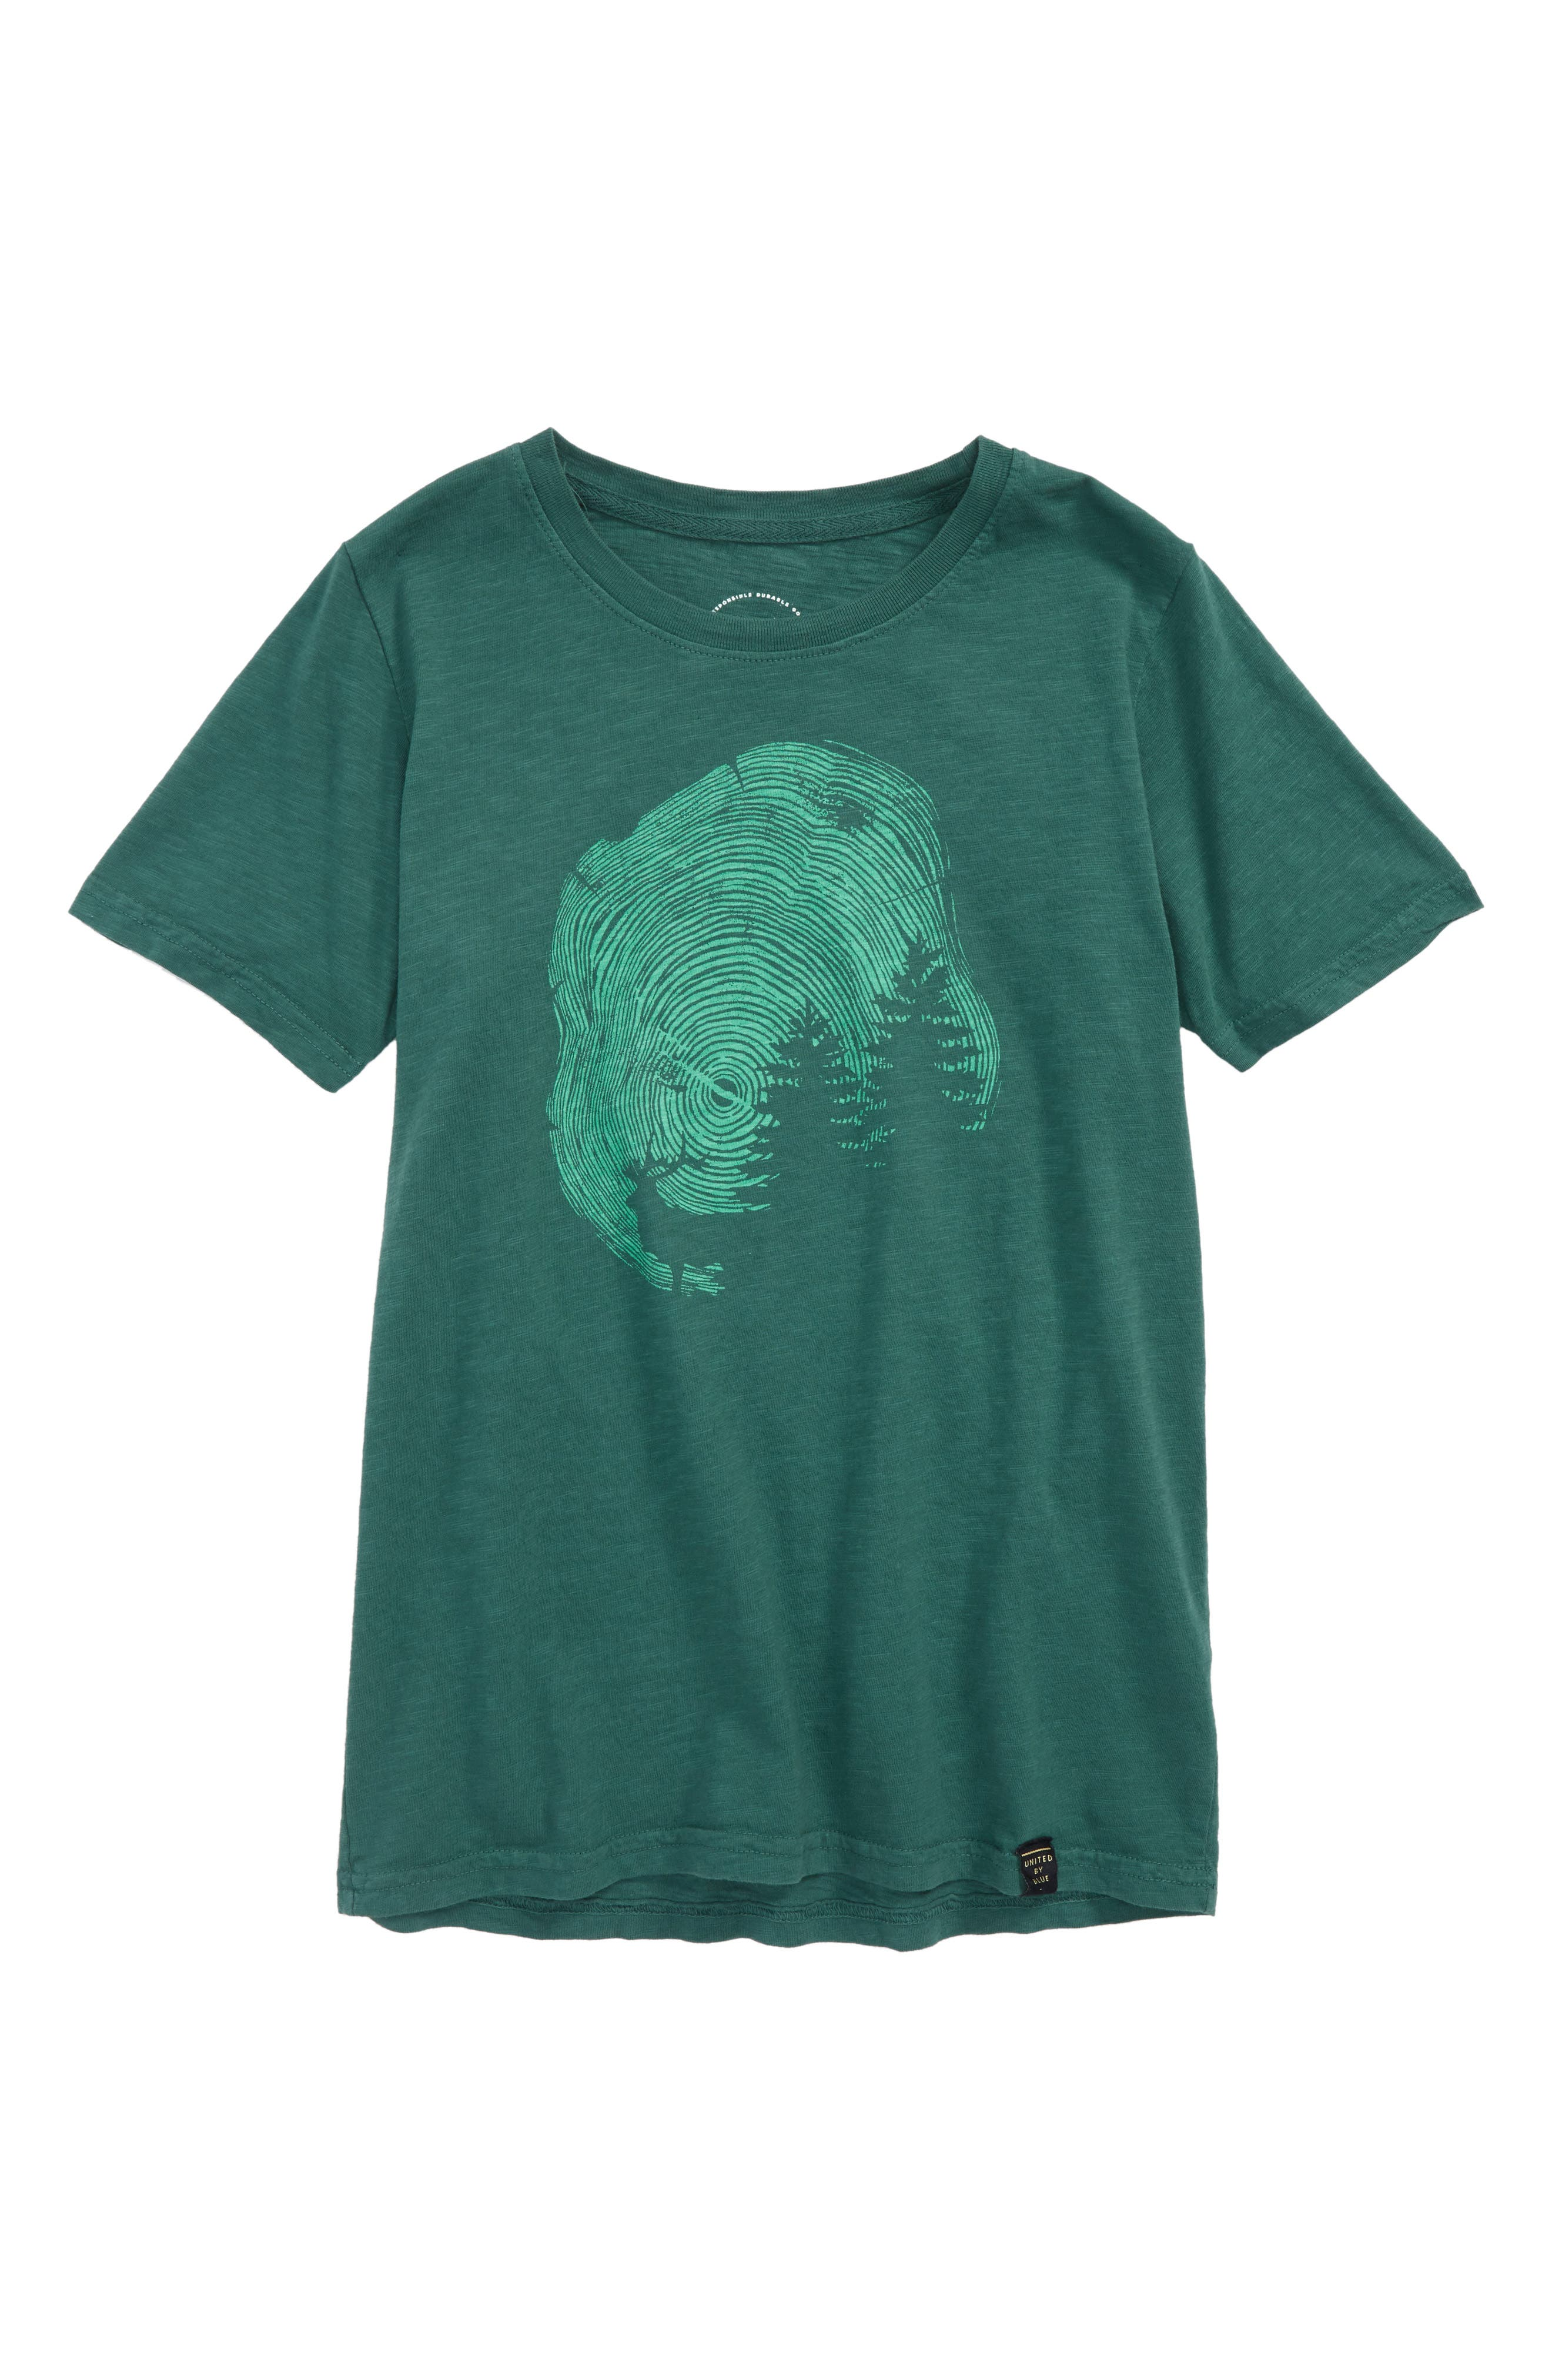 Gorham Organic Cotton T-Shirt,                         Main,                         color, Teal